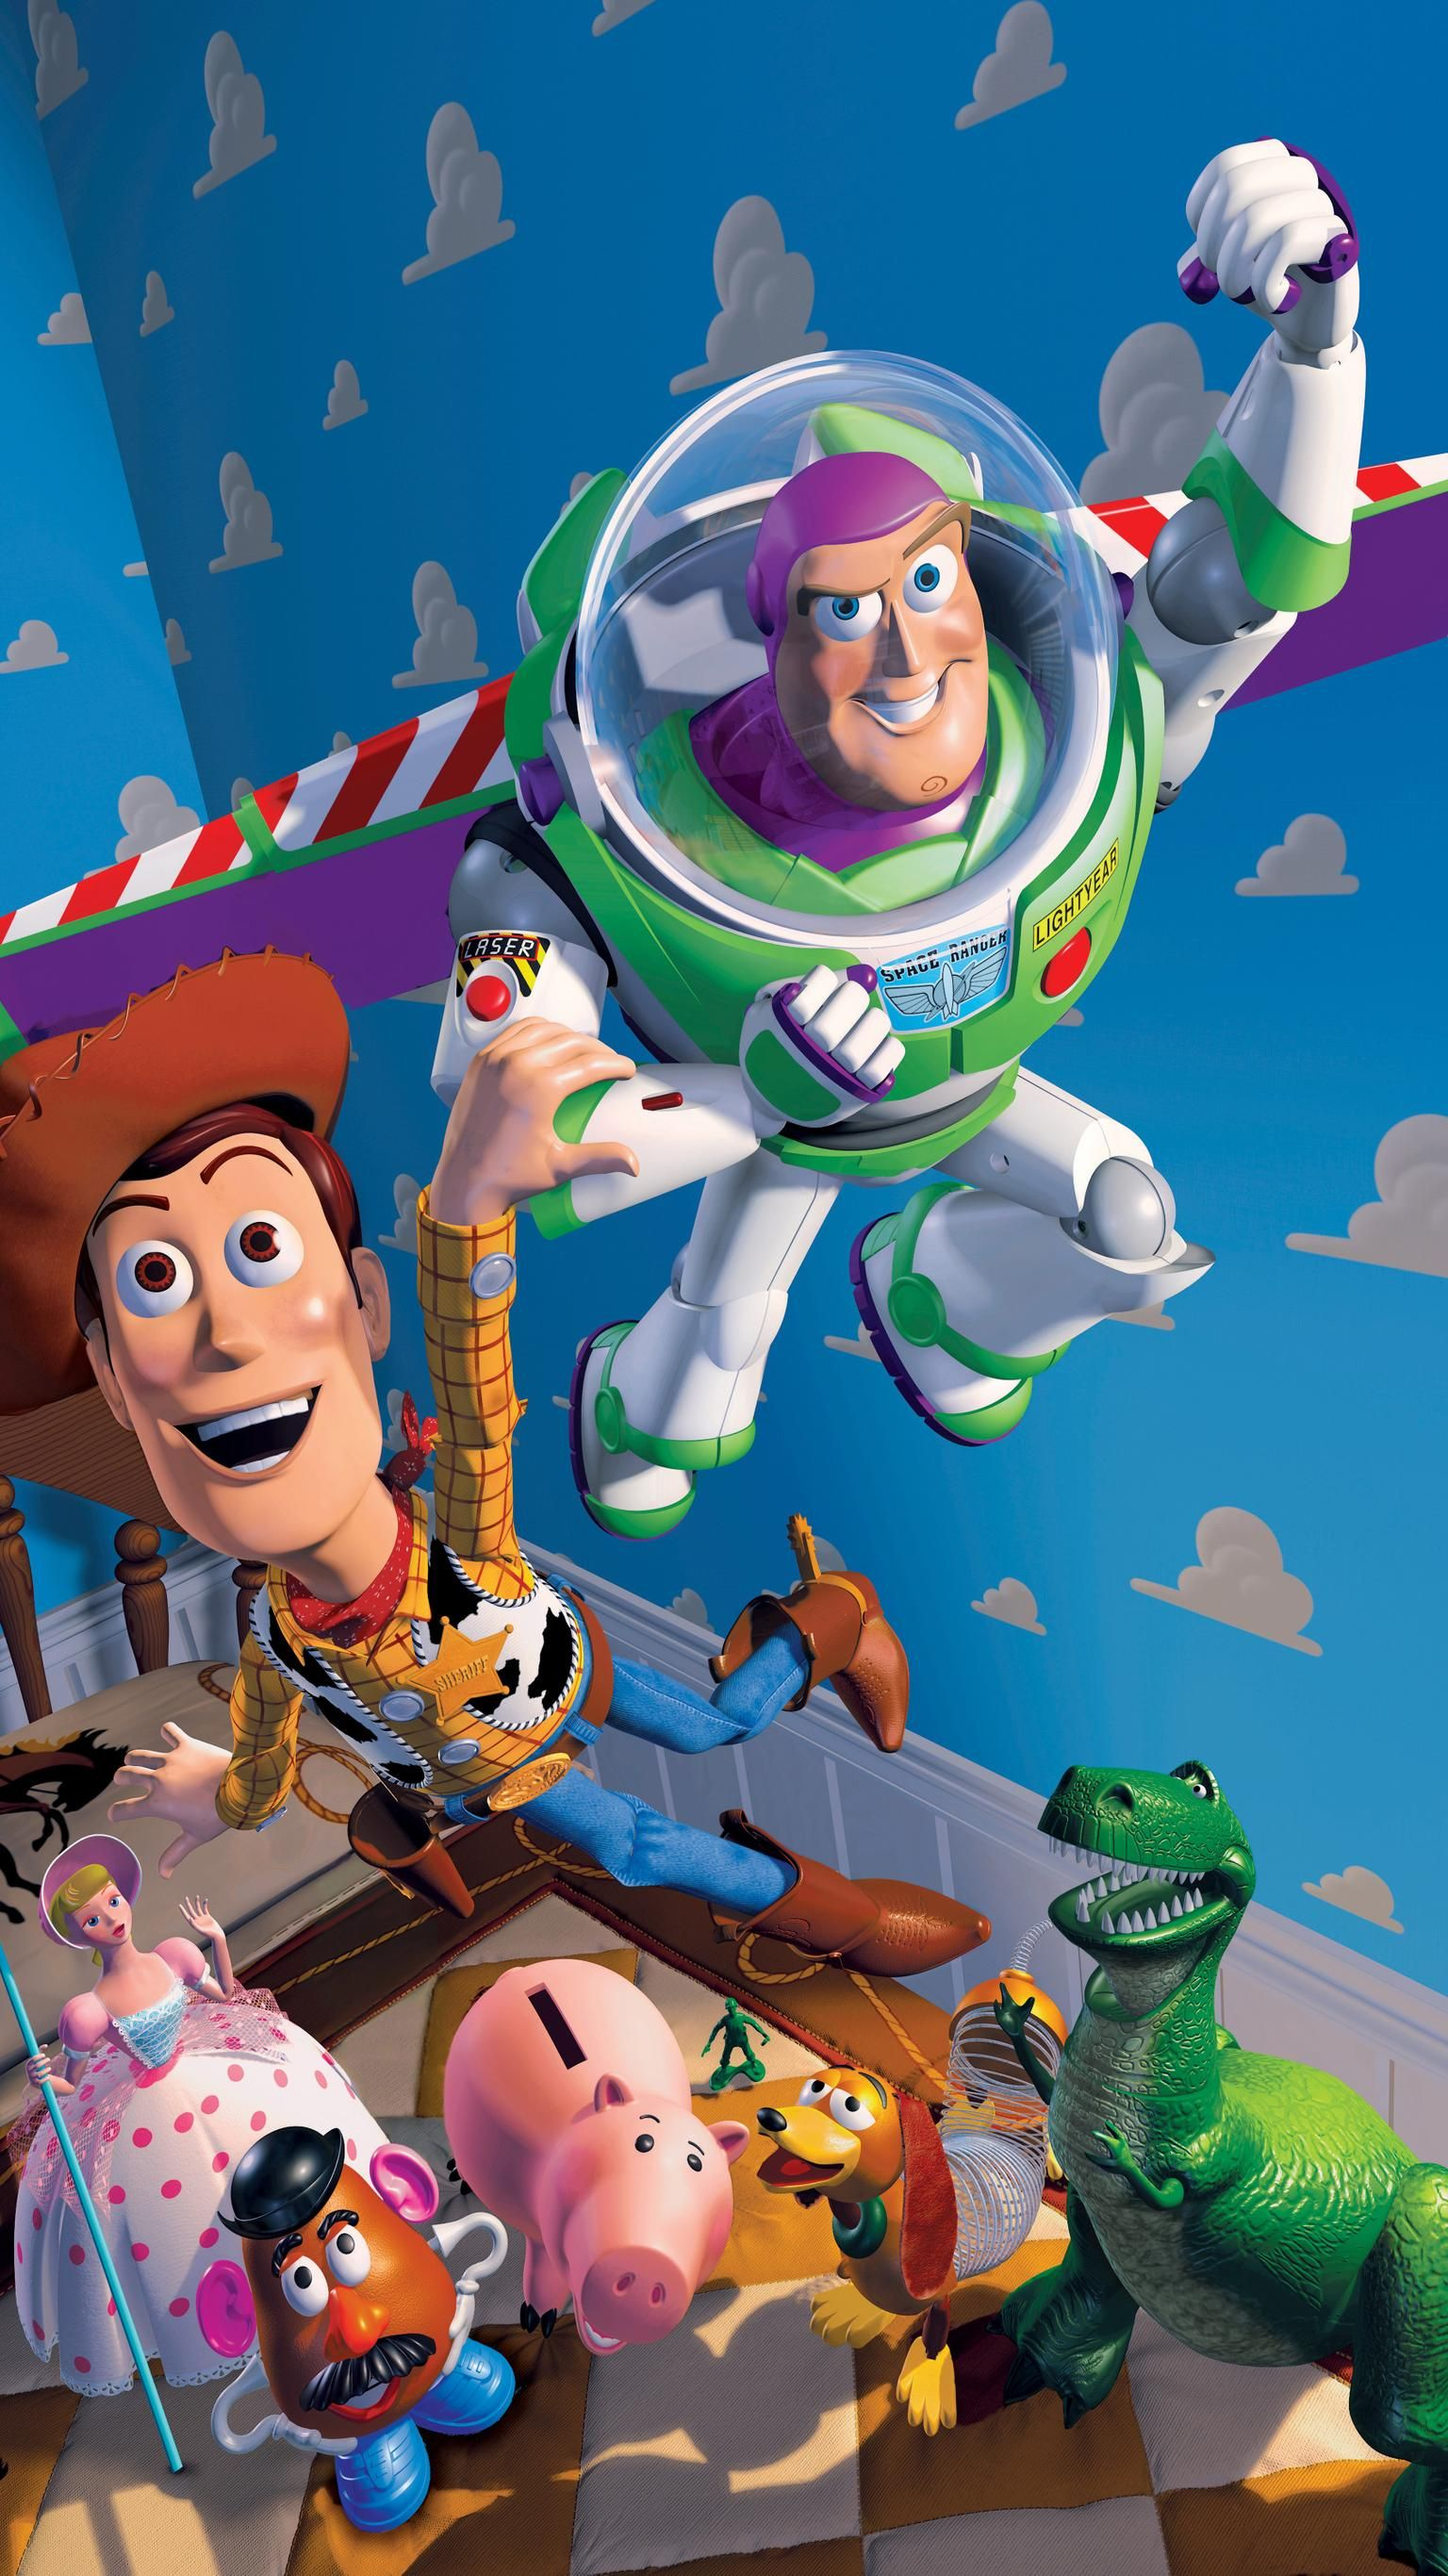 Toy Story 1995 Phone Wallpaper Moviemania Toy Story Movie Toy Story 1995 New Toy Story